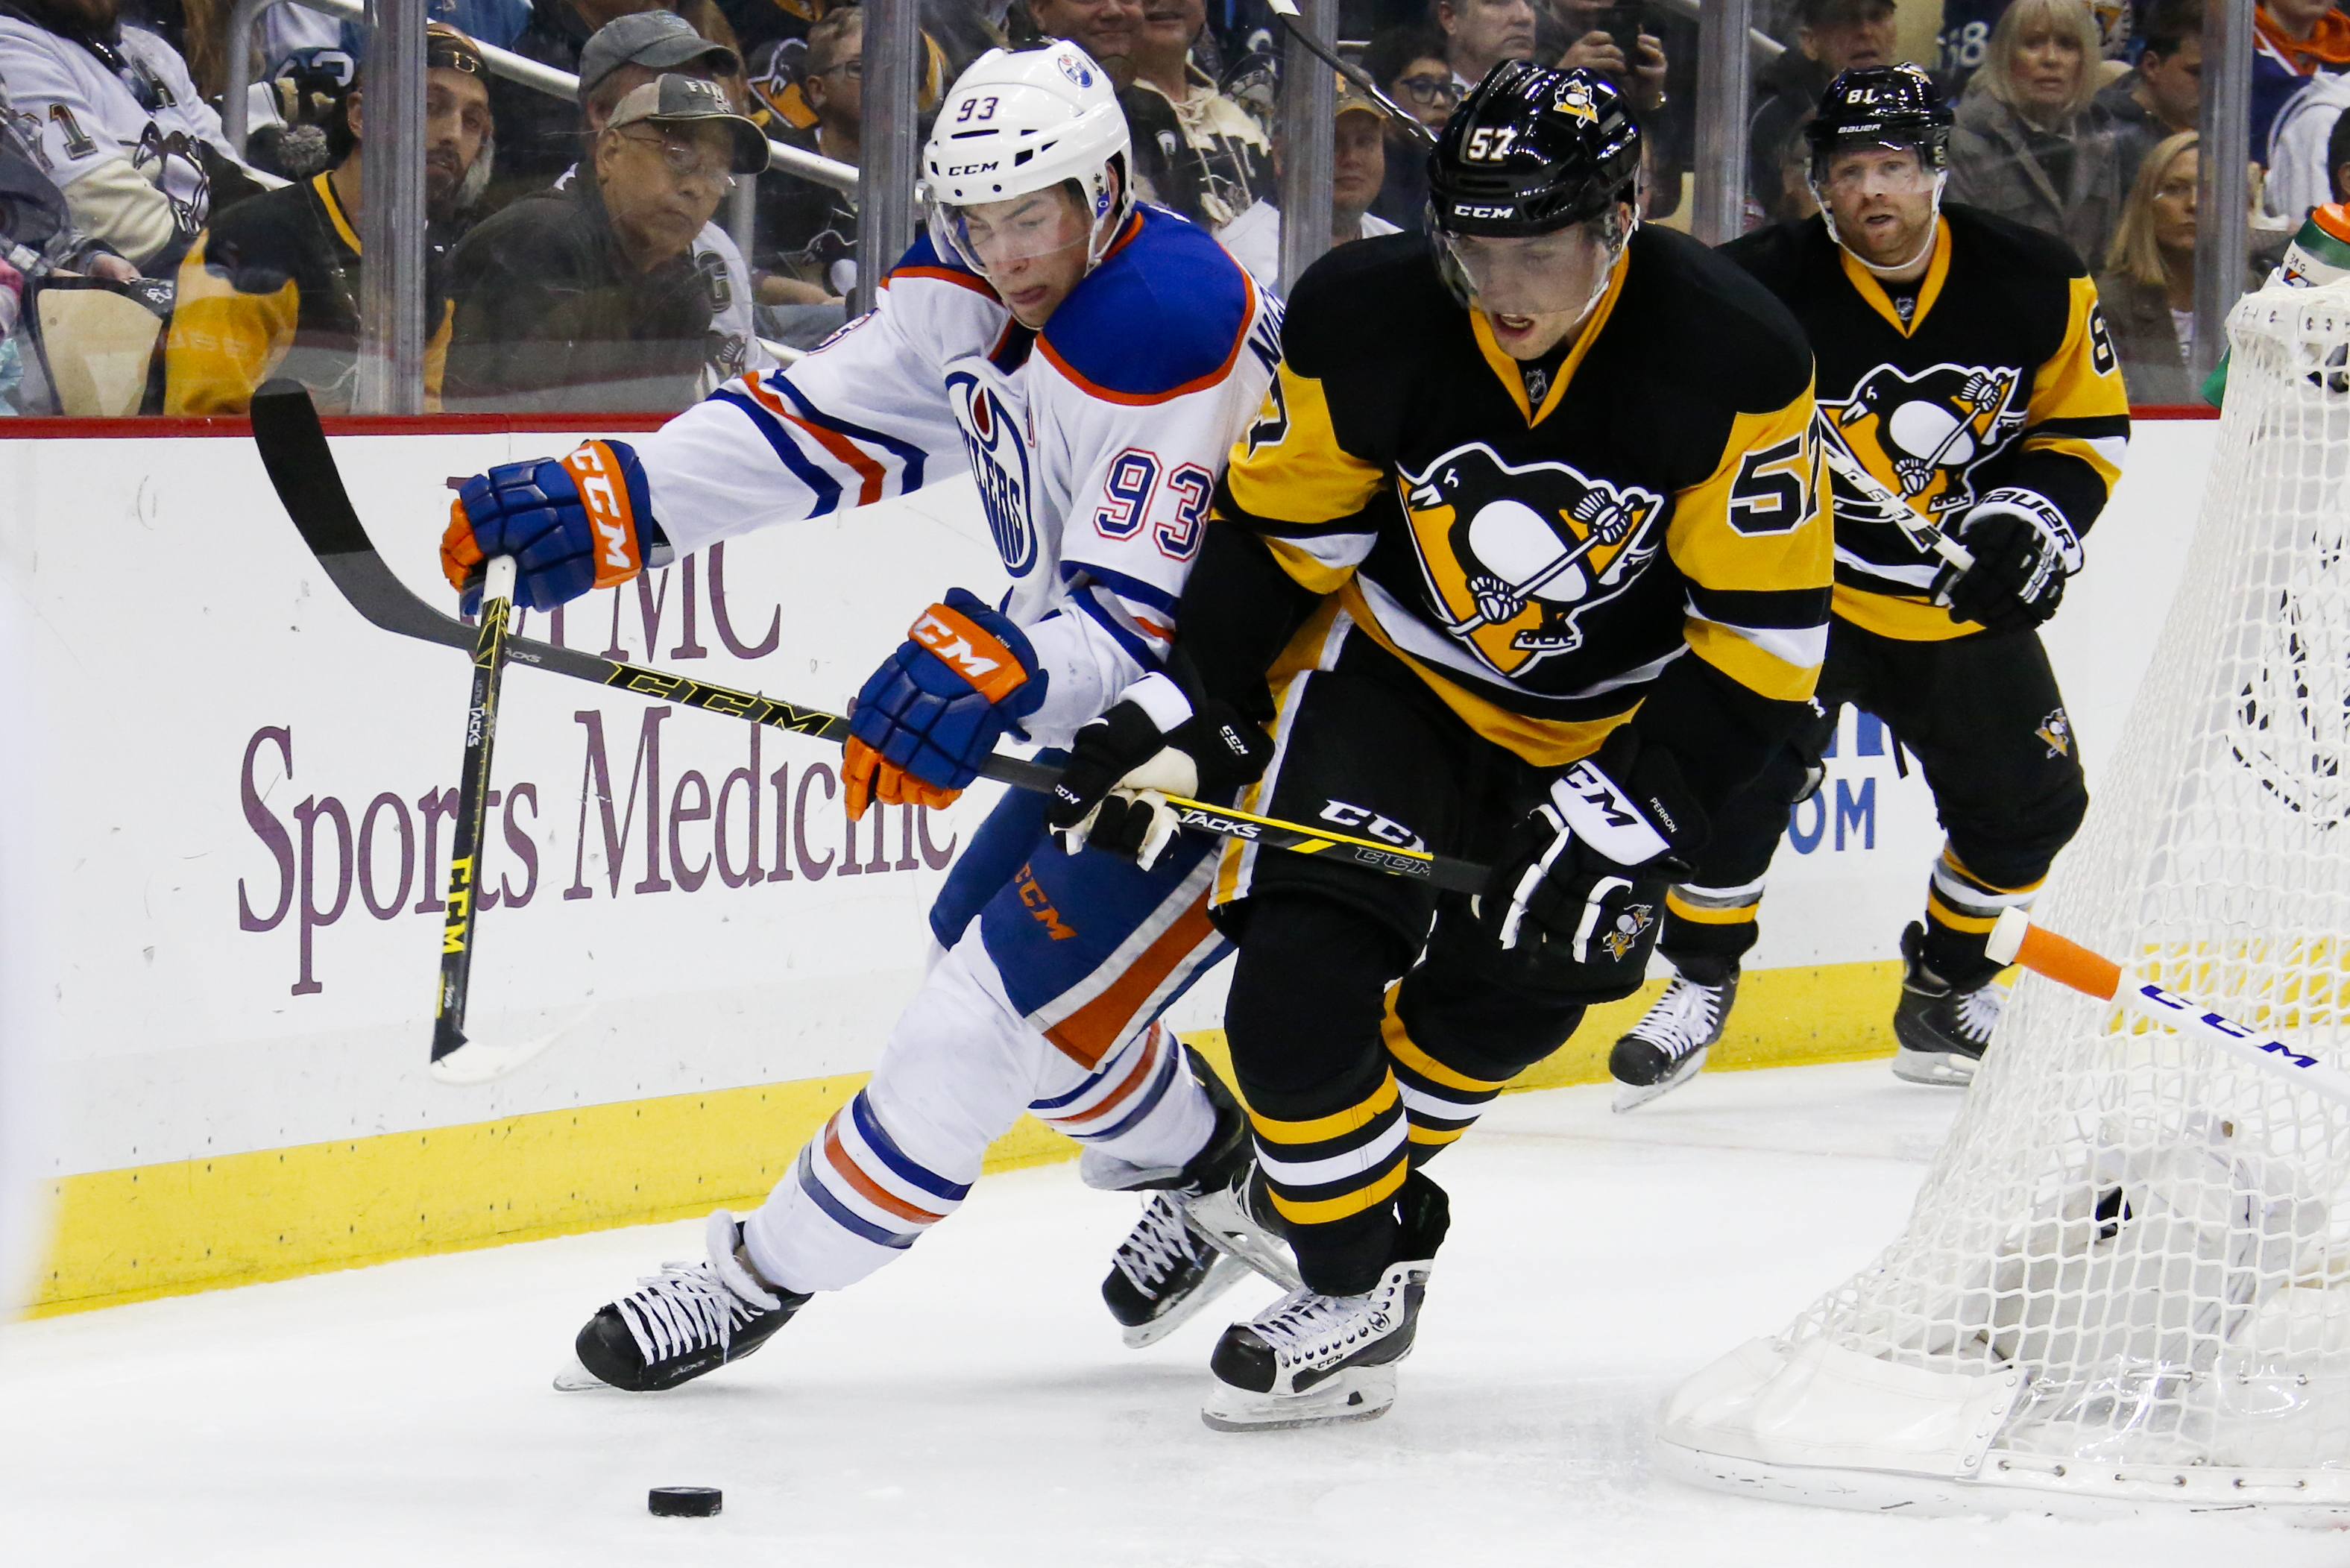 Pittsburgh Penguins' David Perron (57) and Edmonton Oilers' Ryan Nugent-Hopkins (93) battle for the puck during the second period of an NHL hockey game in Pittsburgh, Saturday, Nov. 28, 2015.(AP Photo/Gene J. Puskar)